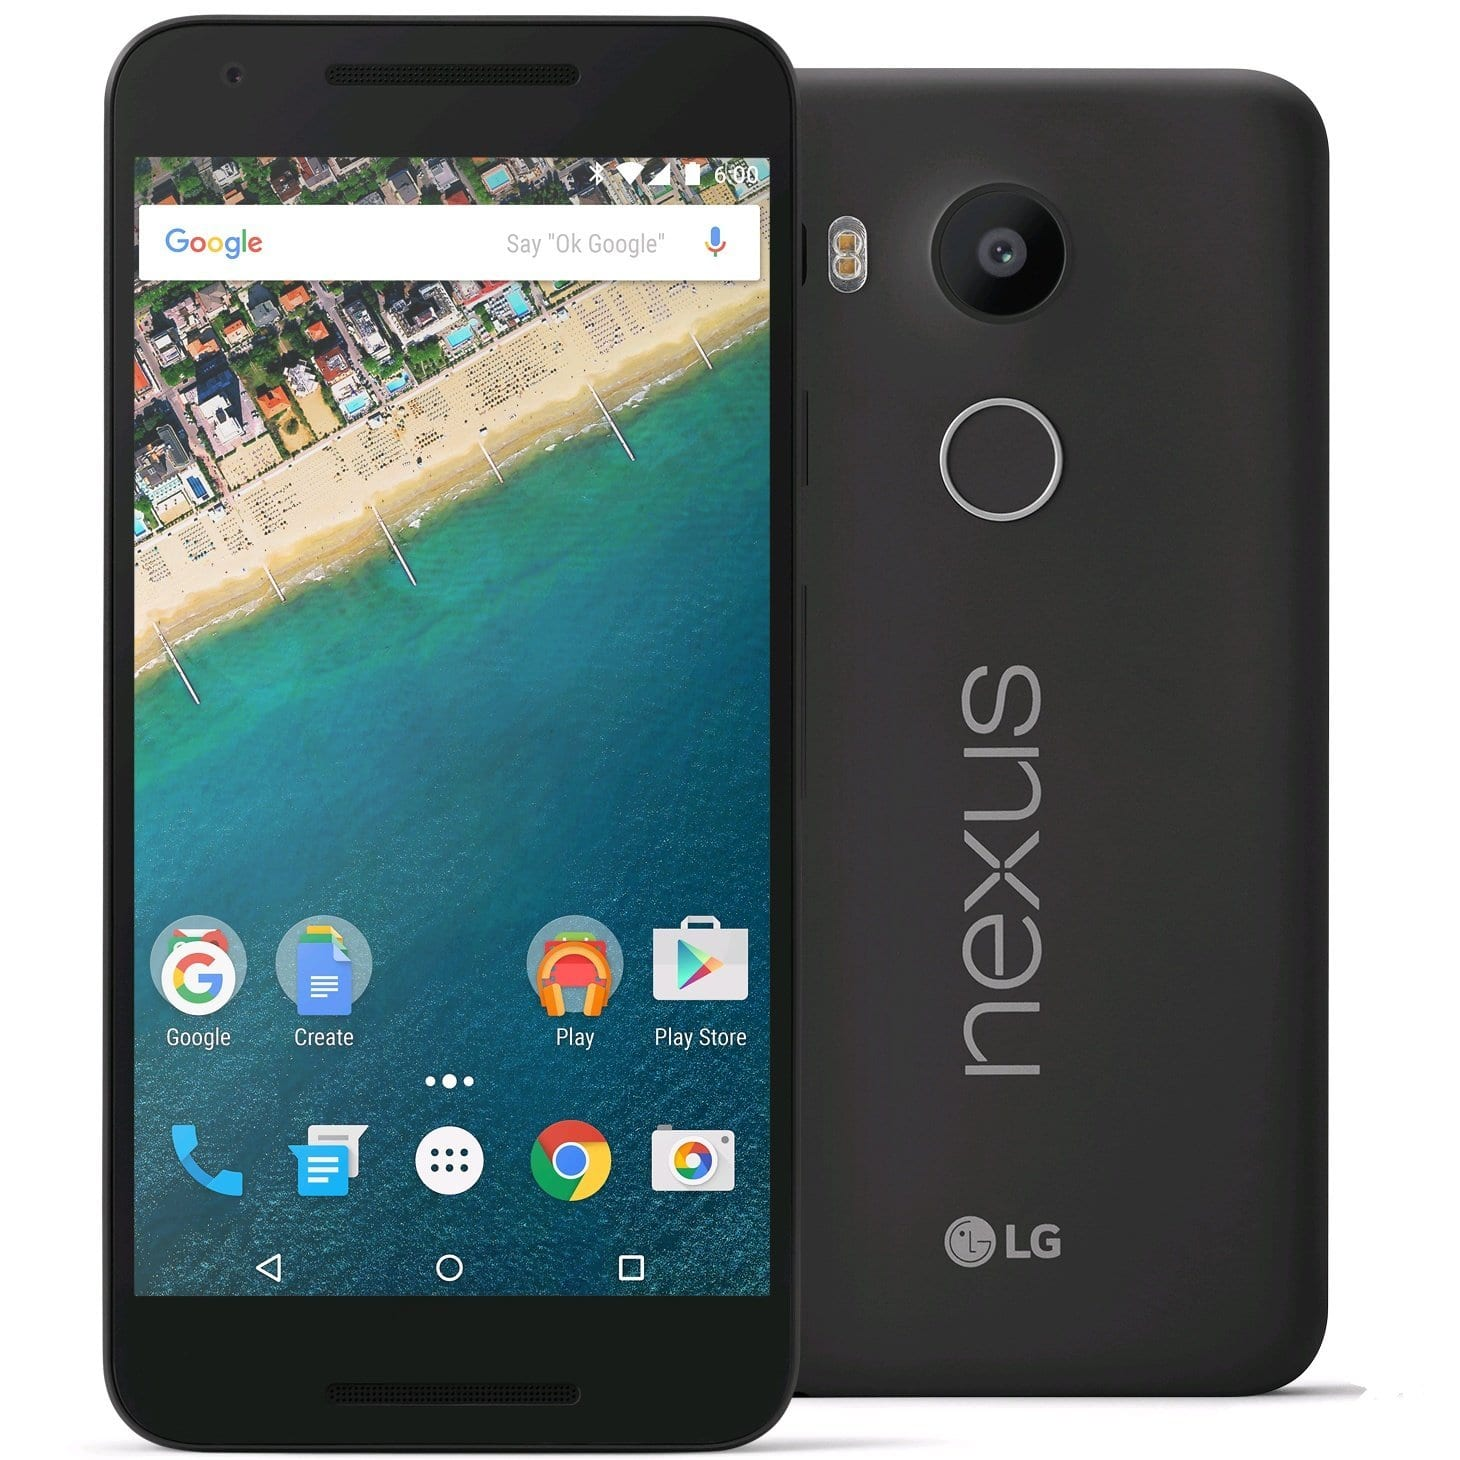 32GB LG Nexus 5X H790 4G LTE Android Unlocked Smartphone (black or white)  $260 + Free Shipping